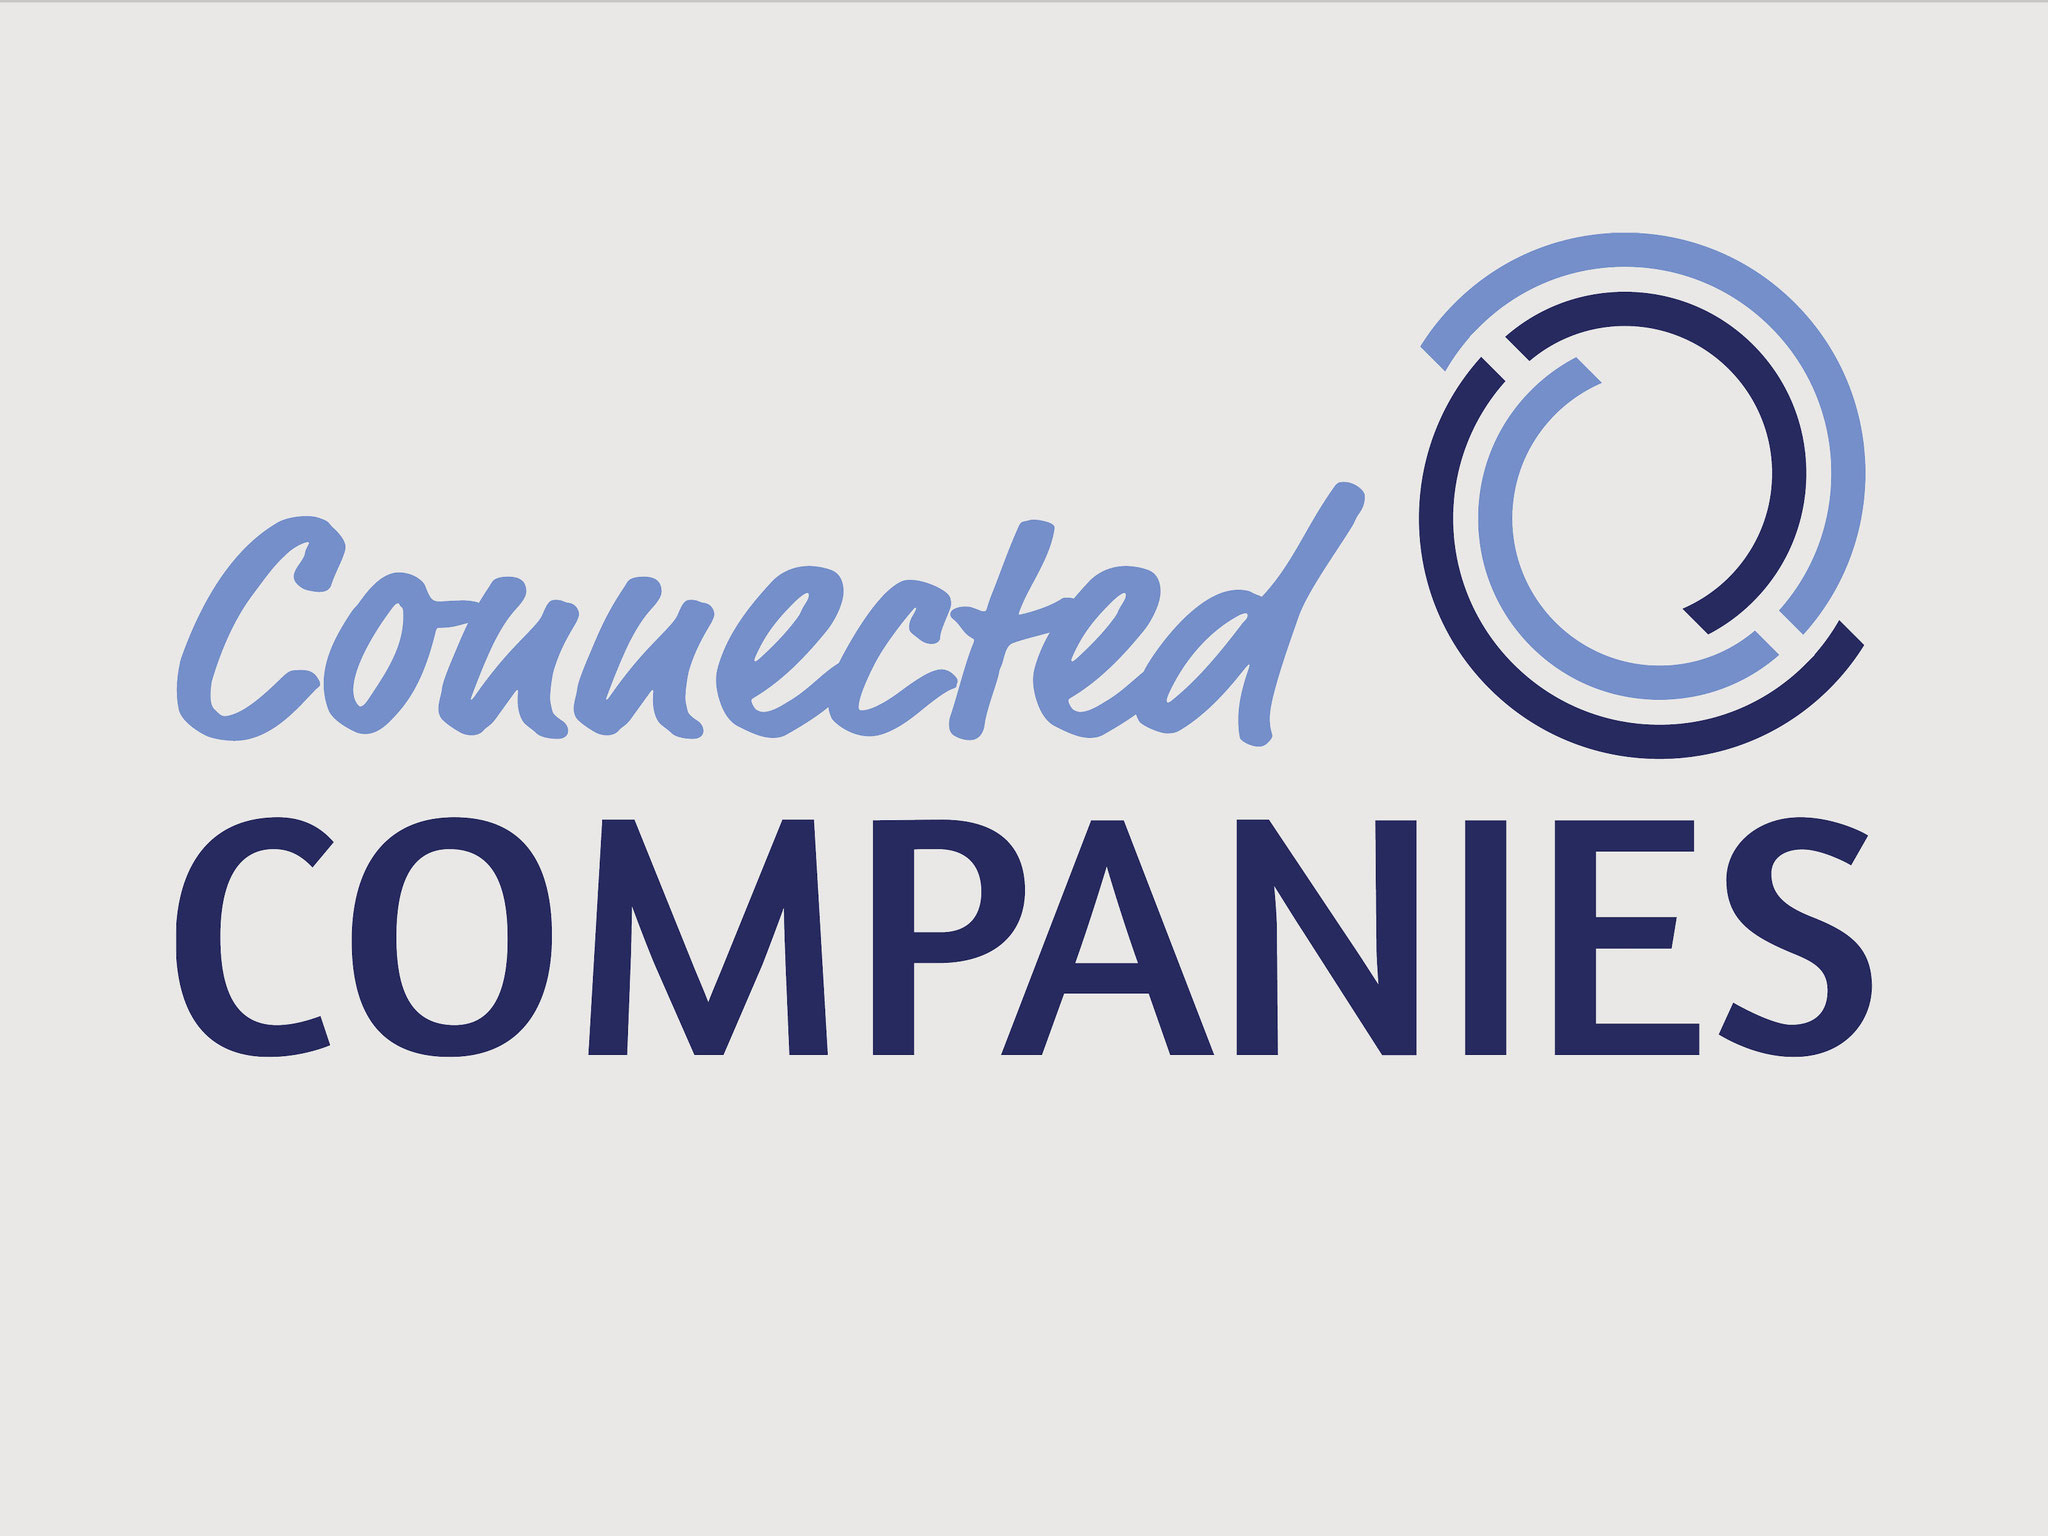 Connected Companies - Corporate Design